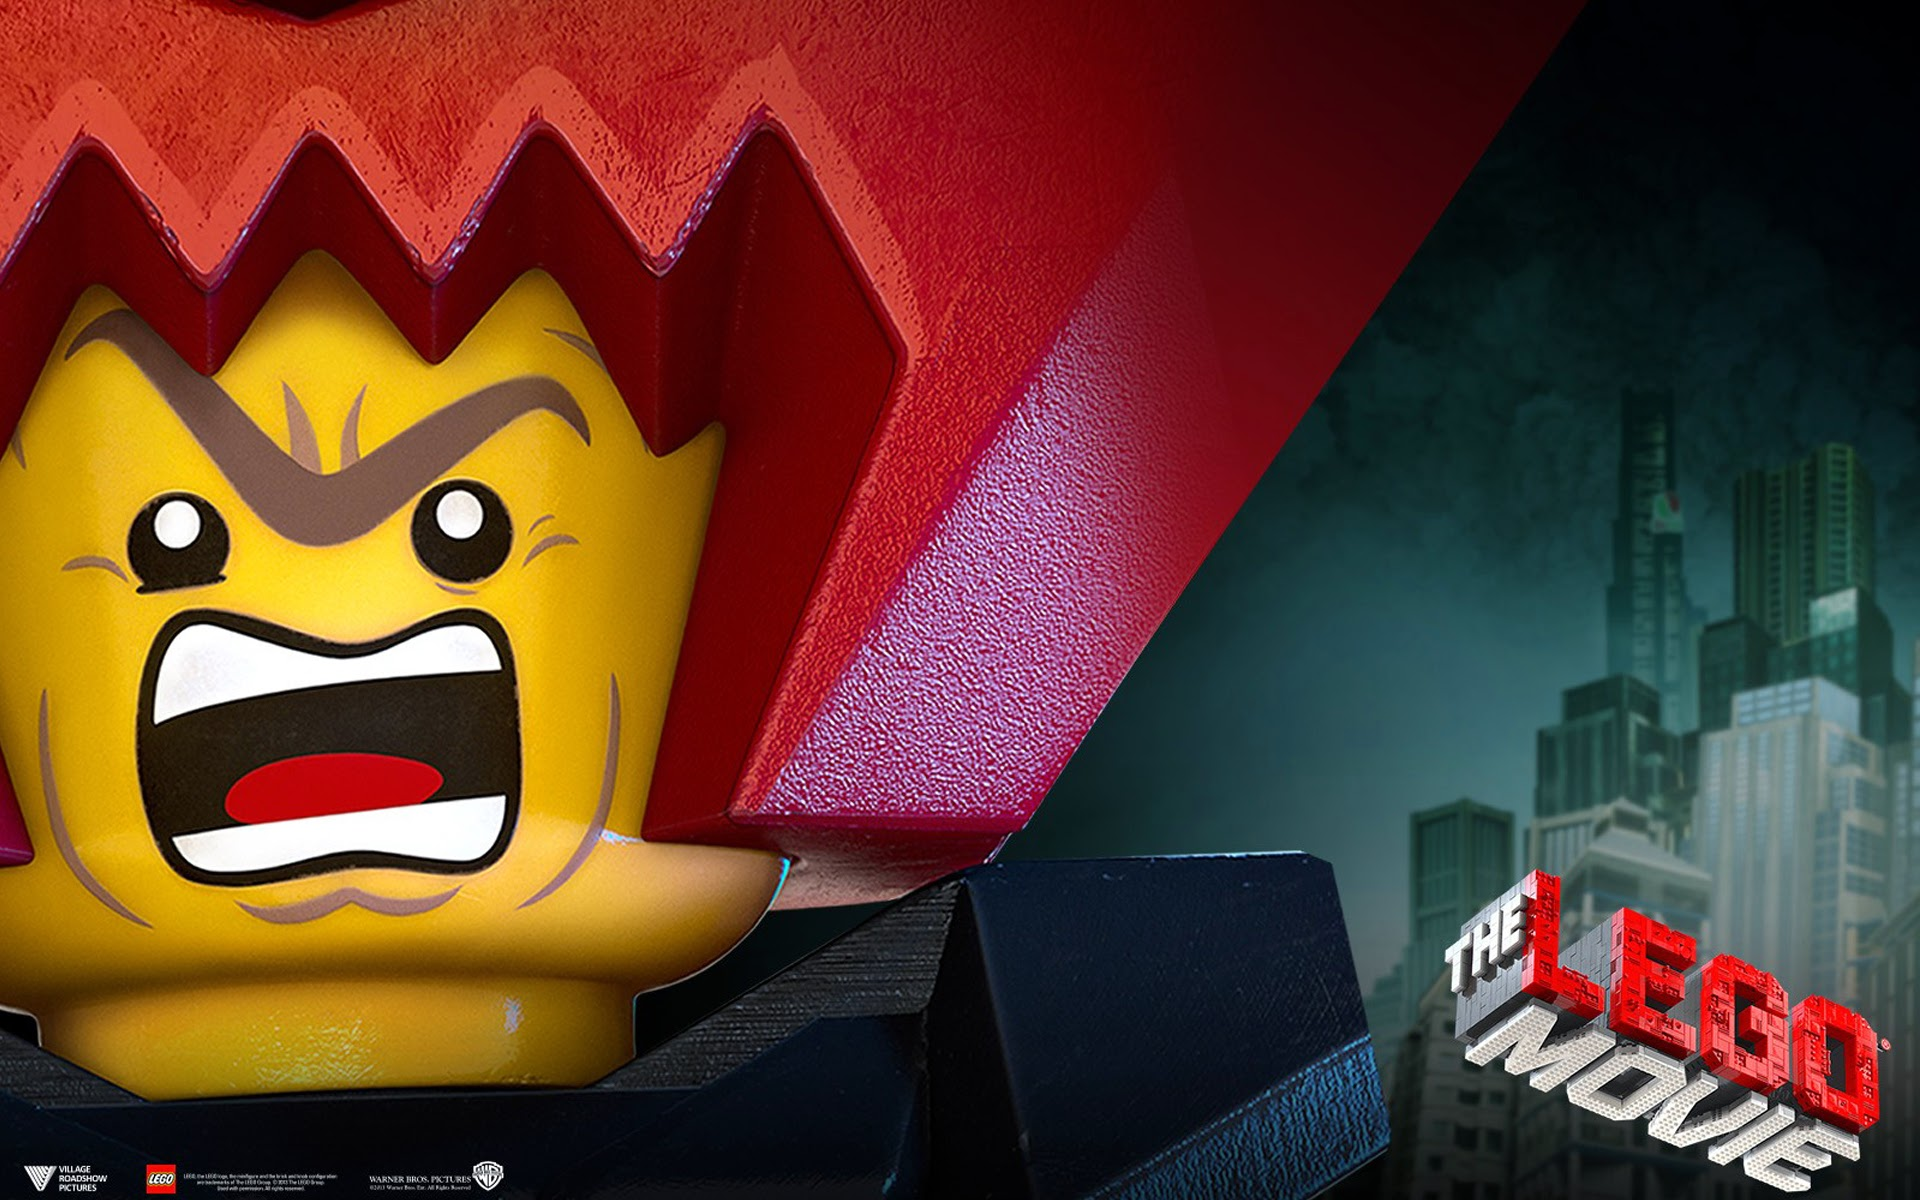 lord business the lego movie 2014 hd wallpaper 1920x1200 6i 1920x1200